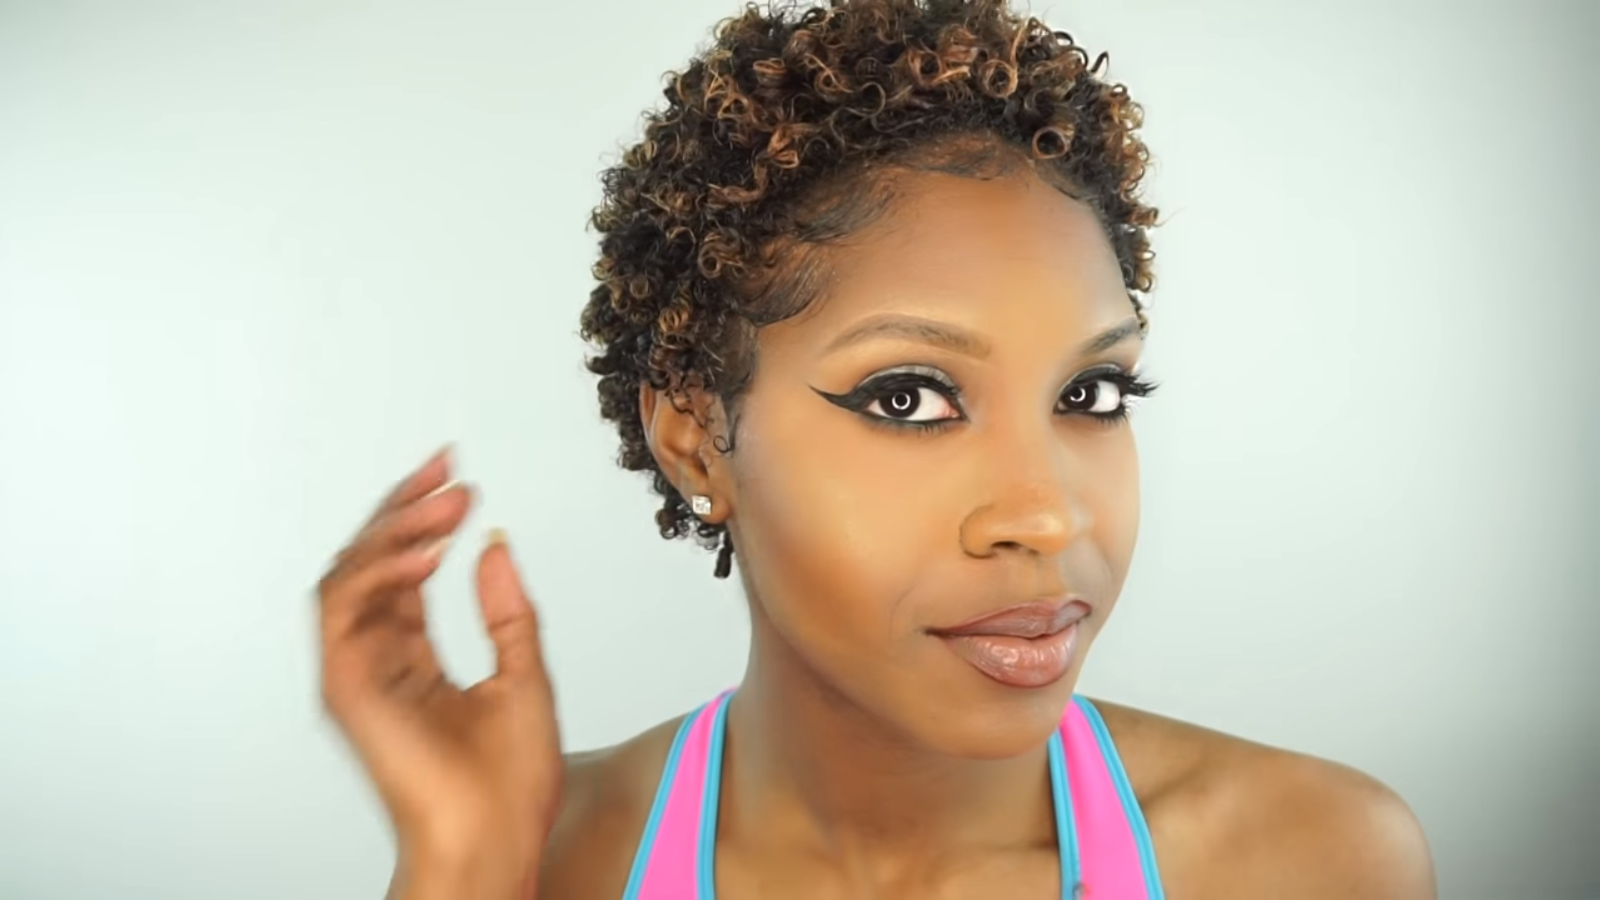 Hairstyles: A Guide To Choosing Short Or Medium Hairstyles For Black Women